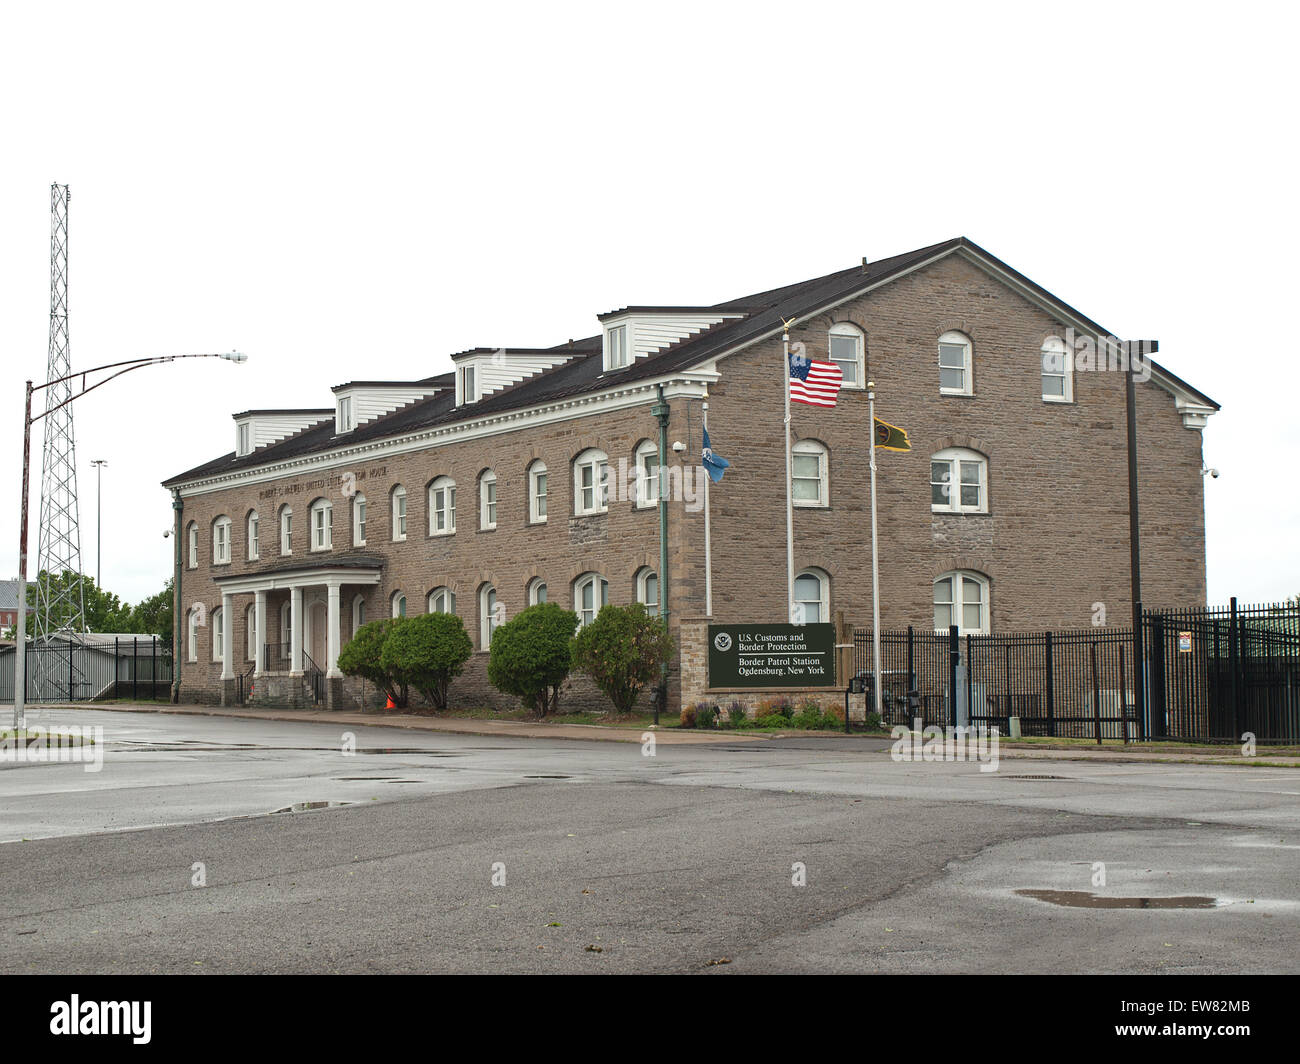 Ogdensburg, New York, USA. May 31,2015. United States Border Patrol Station located in the historic Robert C. McEwen Stock Photo